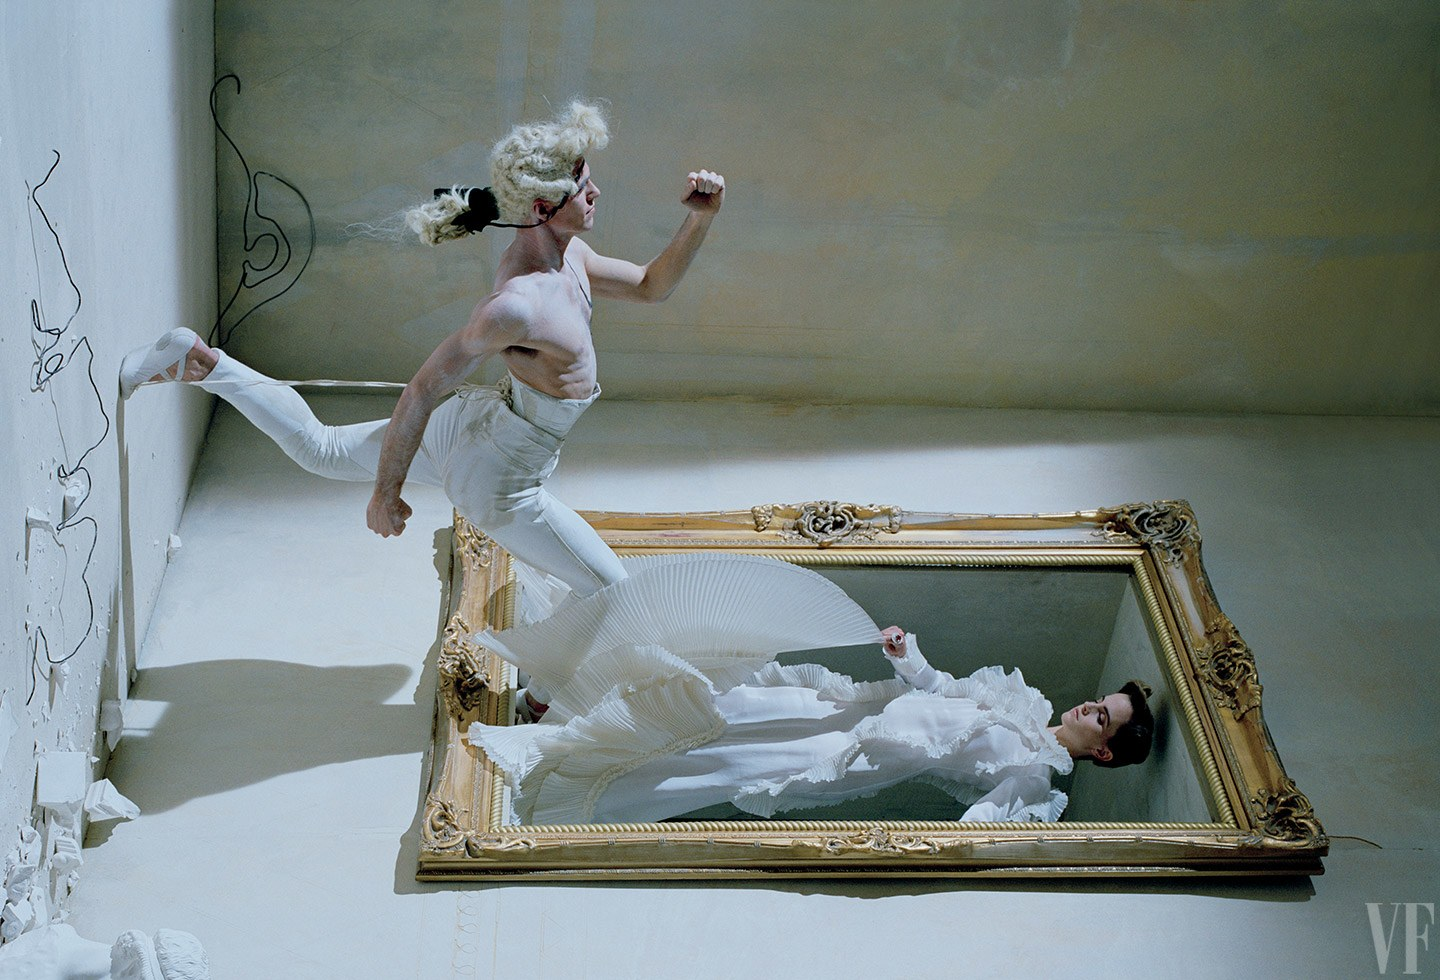 Photograph by Tim Walker. Styled by Jessica Diehl.